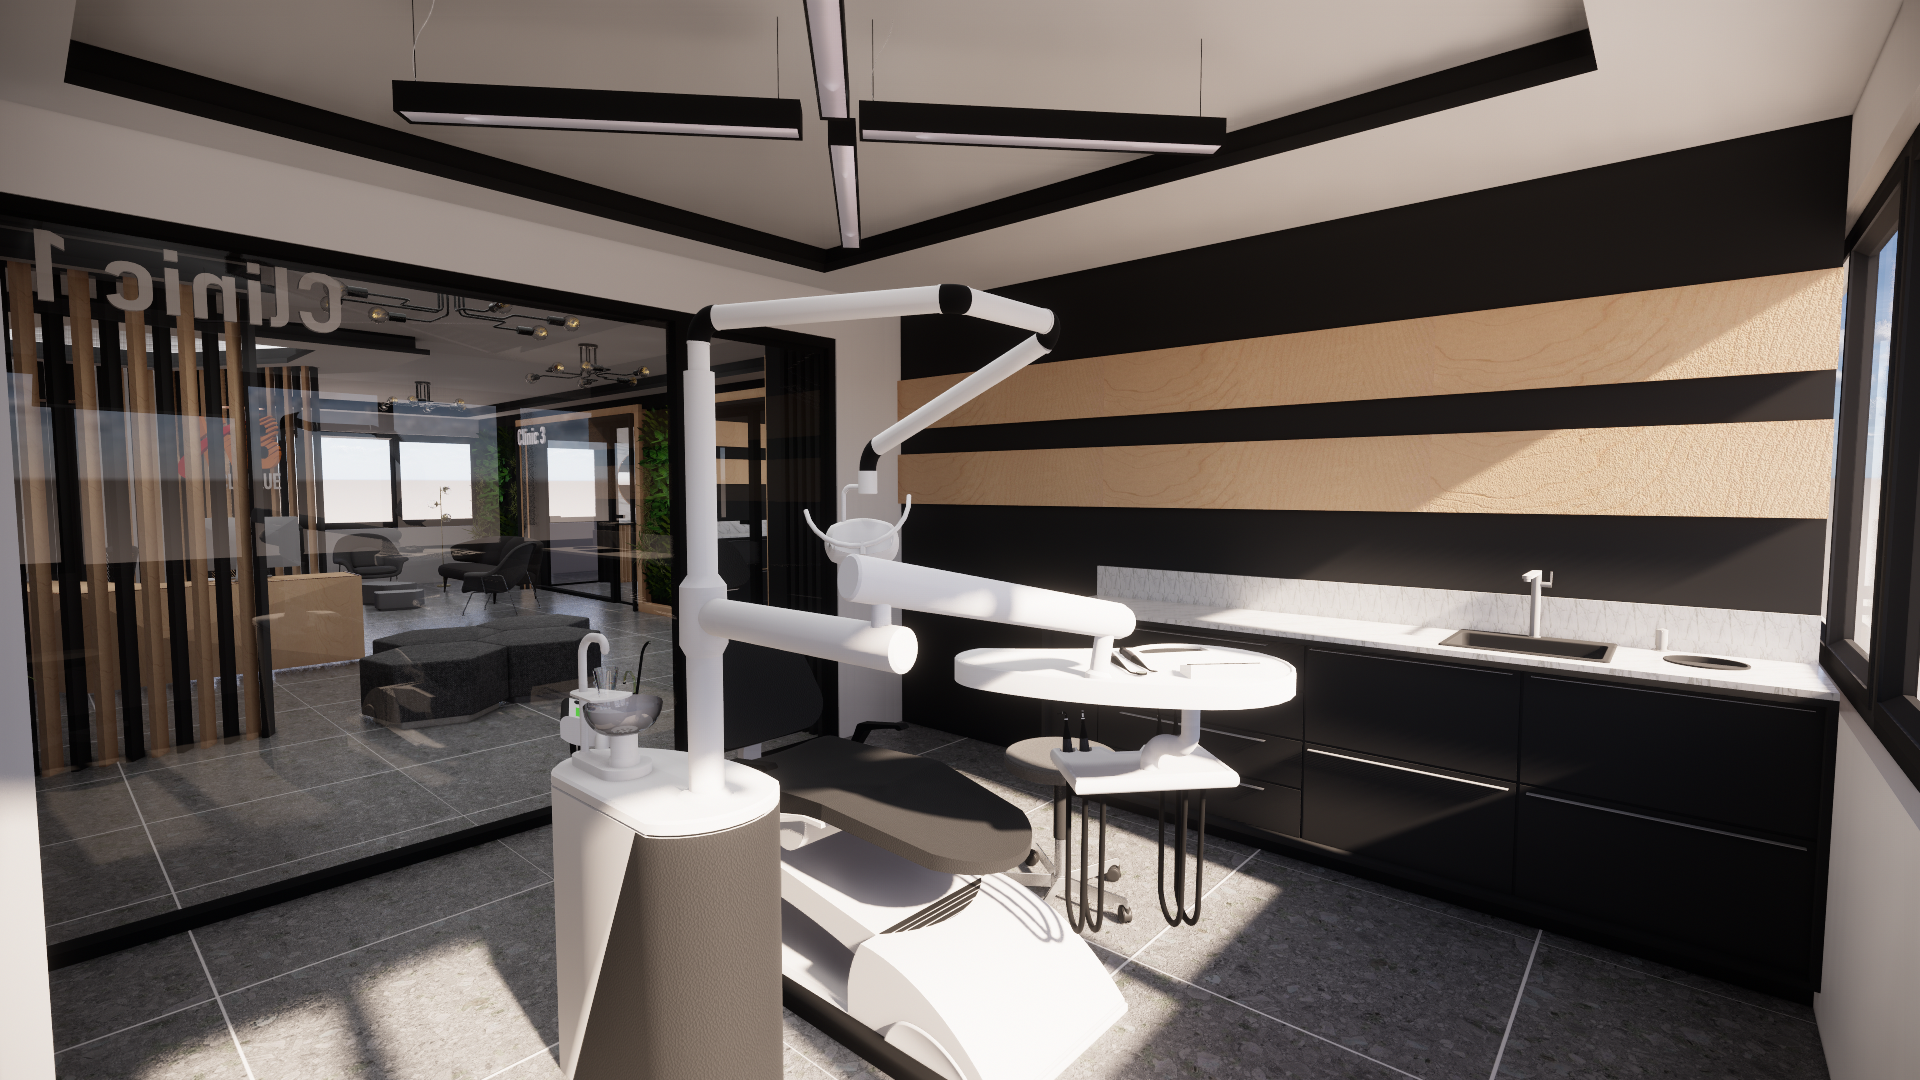 wdclinic_render_010.png